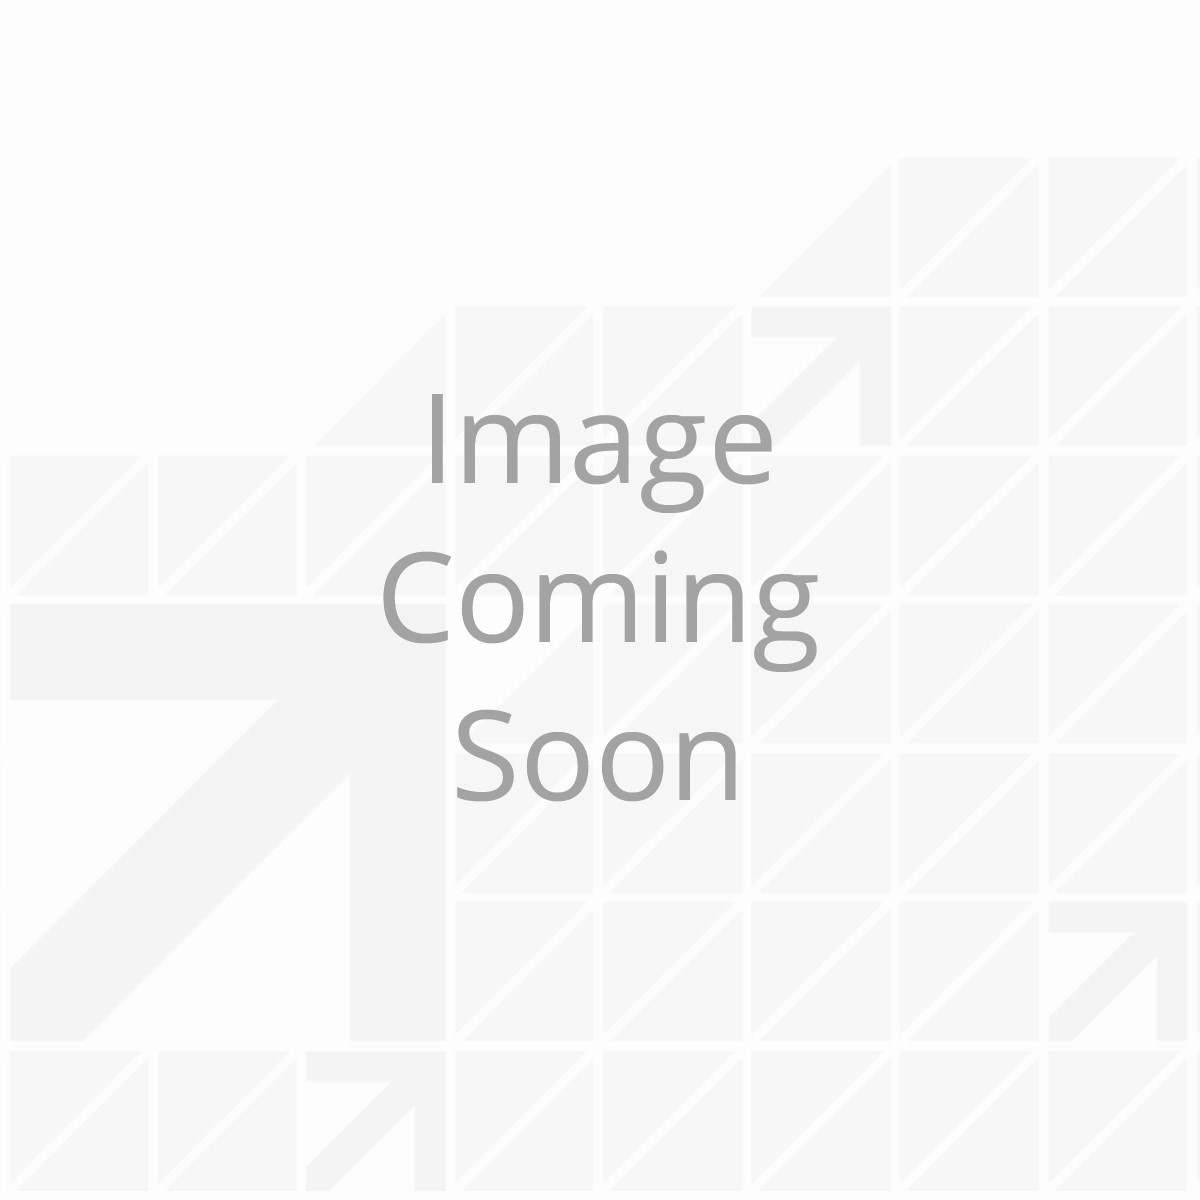 Gear Motor with Pin and Bolt - Dual Shaft (Mid Torque)